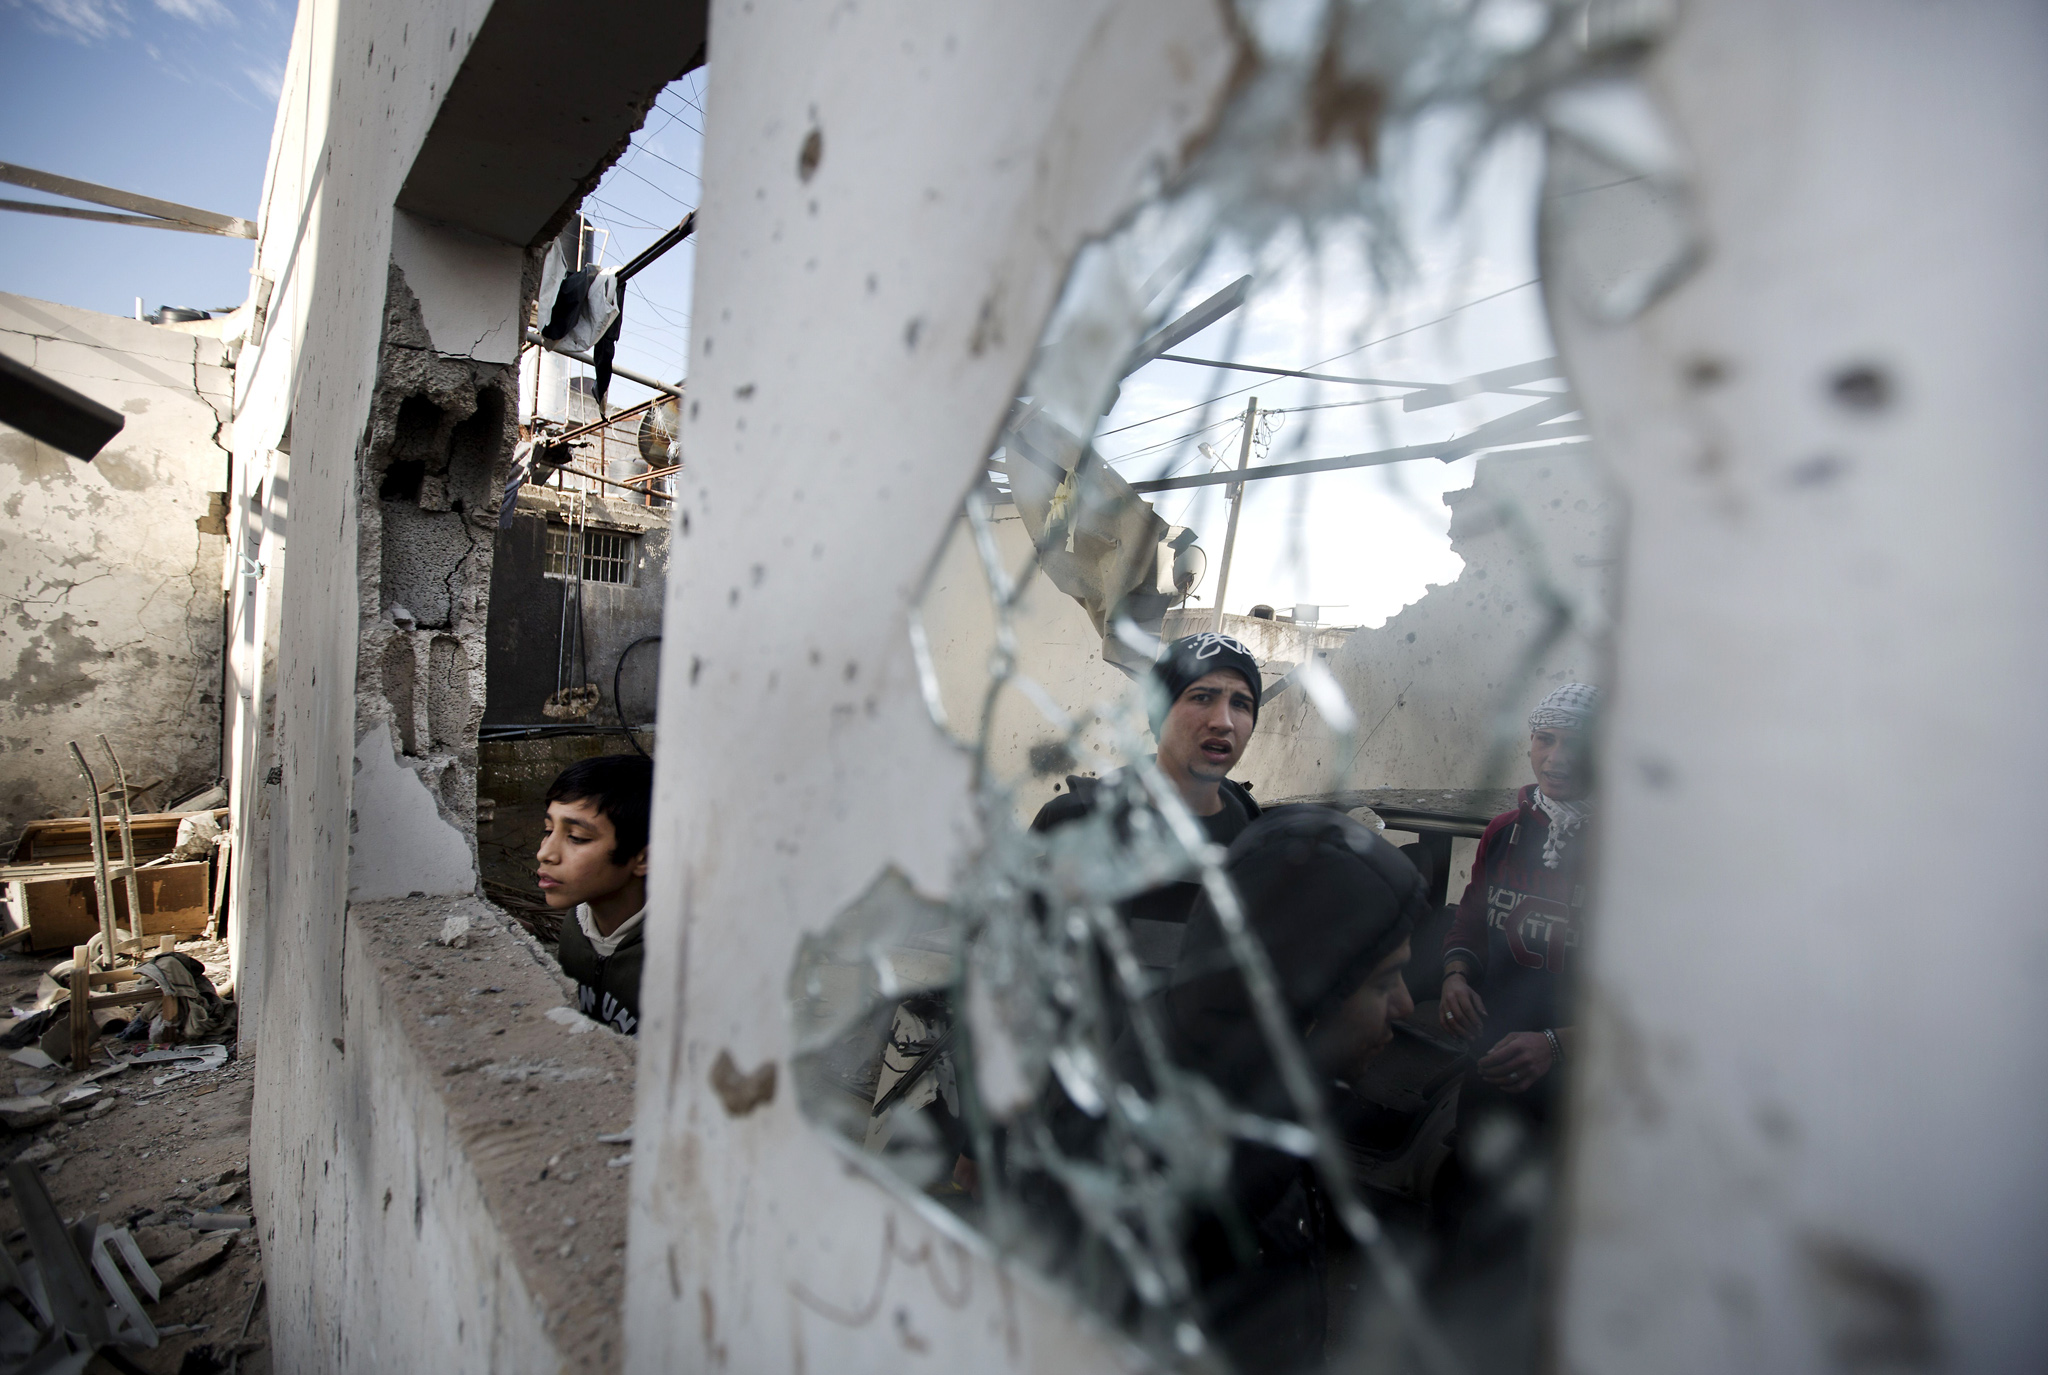 Palestinian youths check a destroyed building following overnight Israeli air strikes in Gaza City on January 16, 2014. Israeli air strikes in the Gaza Strip against training camps used by the armed wing of the territory's Hamas rulers left four children and a woman wounded, Palestinian medical sources said.